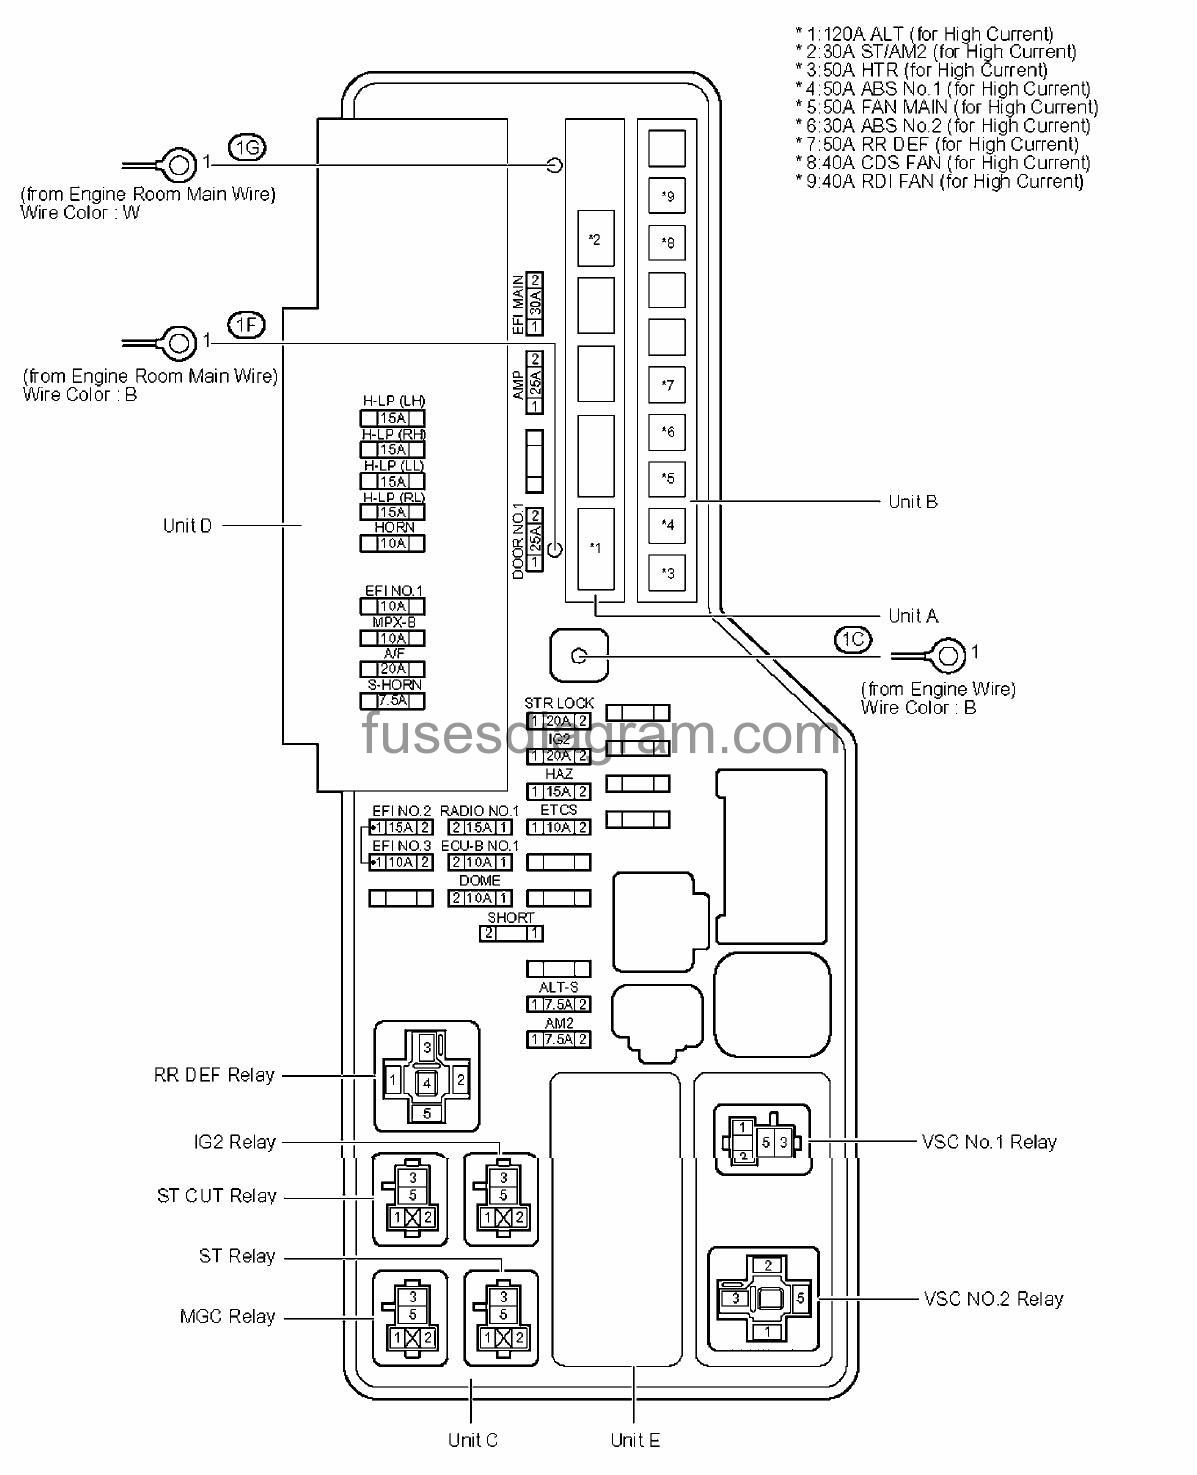 2010 camry fuse box schematic diagram data